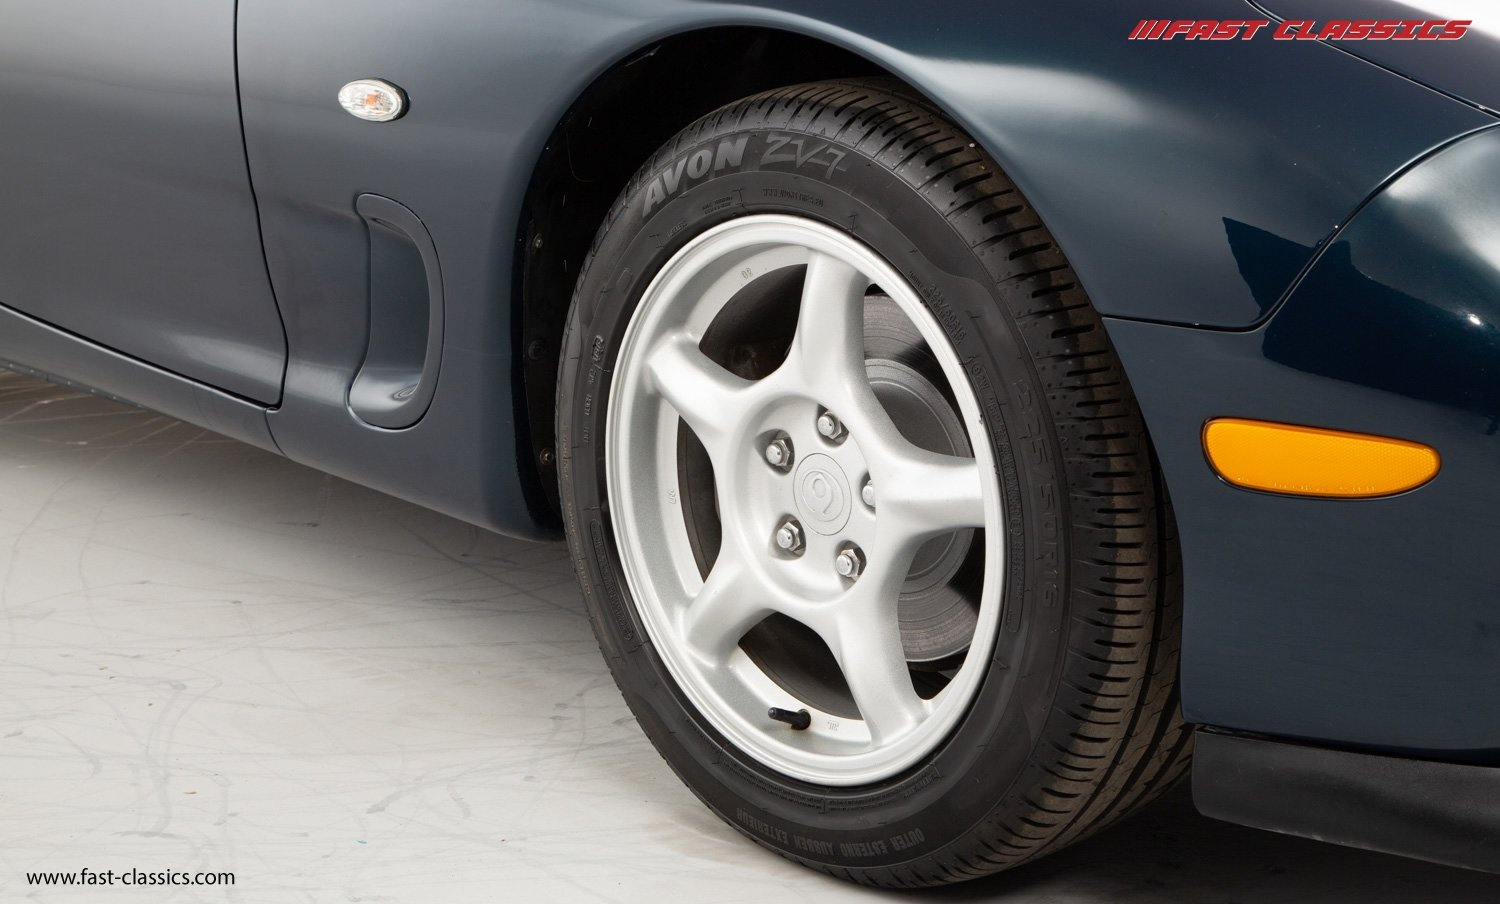 1993 MAZDA RX-7 FD // FAMILY OWNED // 26K MILES // 1 OF 210 UK DE For Sale (picture 22 of 23)